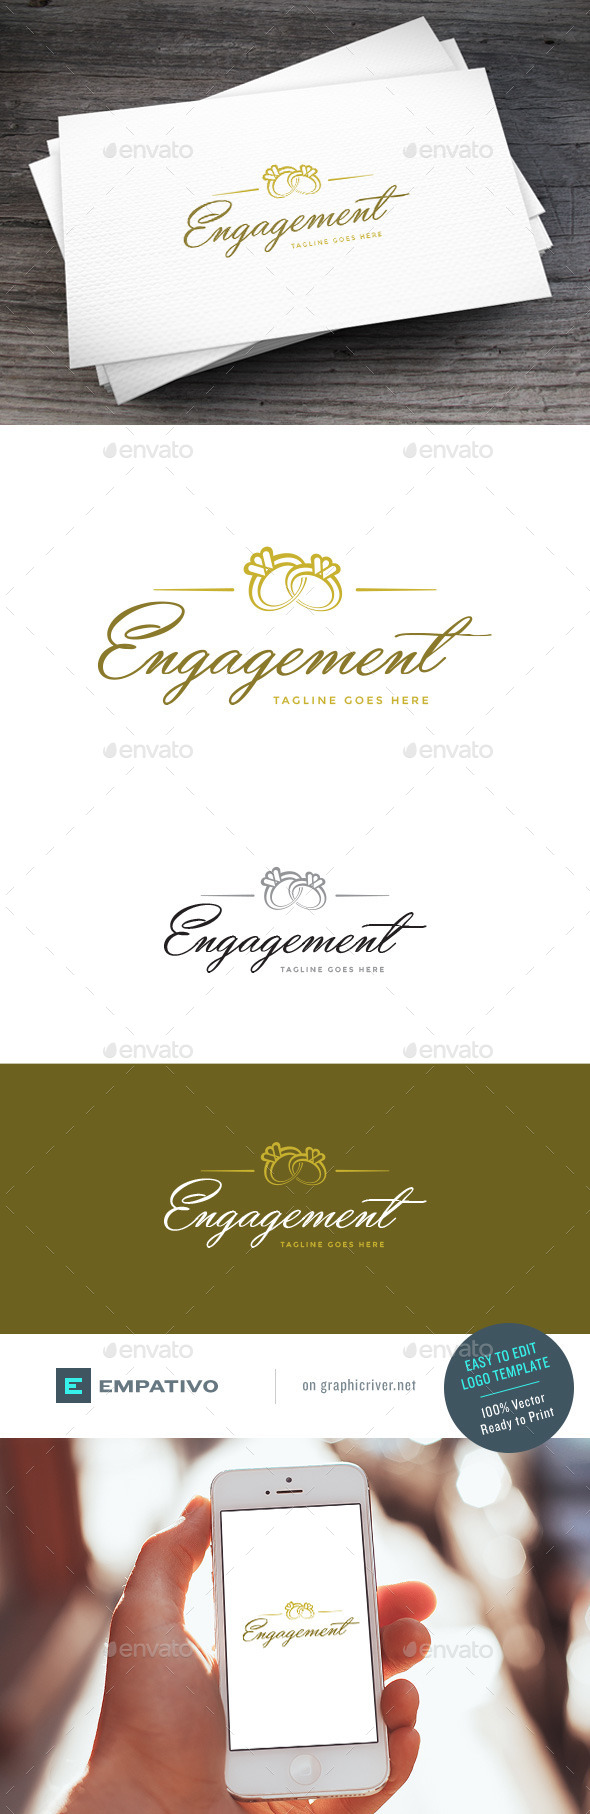 GraphicRiver Engagement Logo Template 11098119